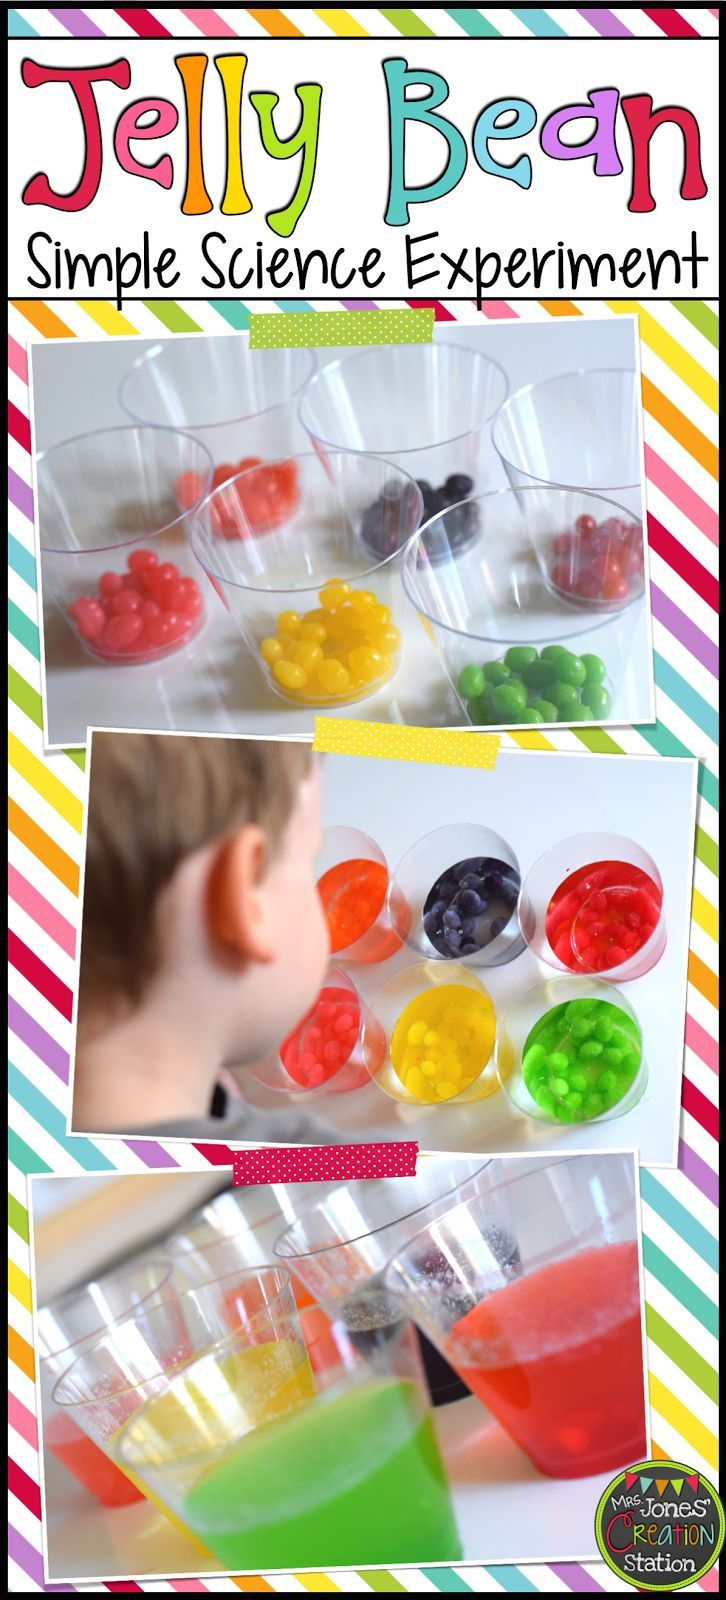 Mrs. Jones' Creation Station: Jelly Bean Simple Science Experiment